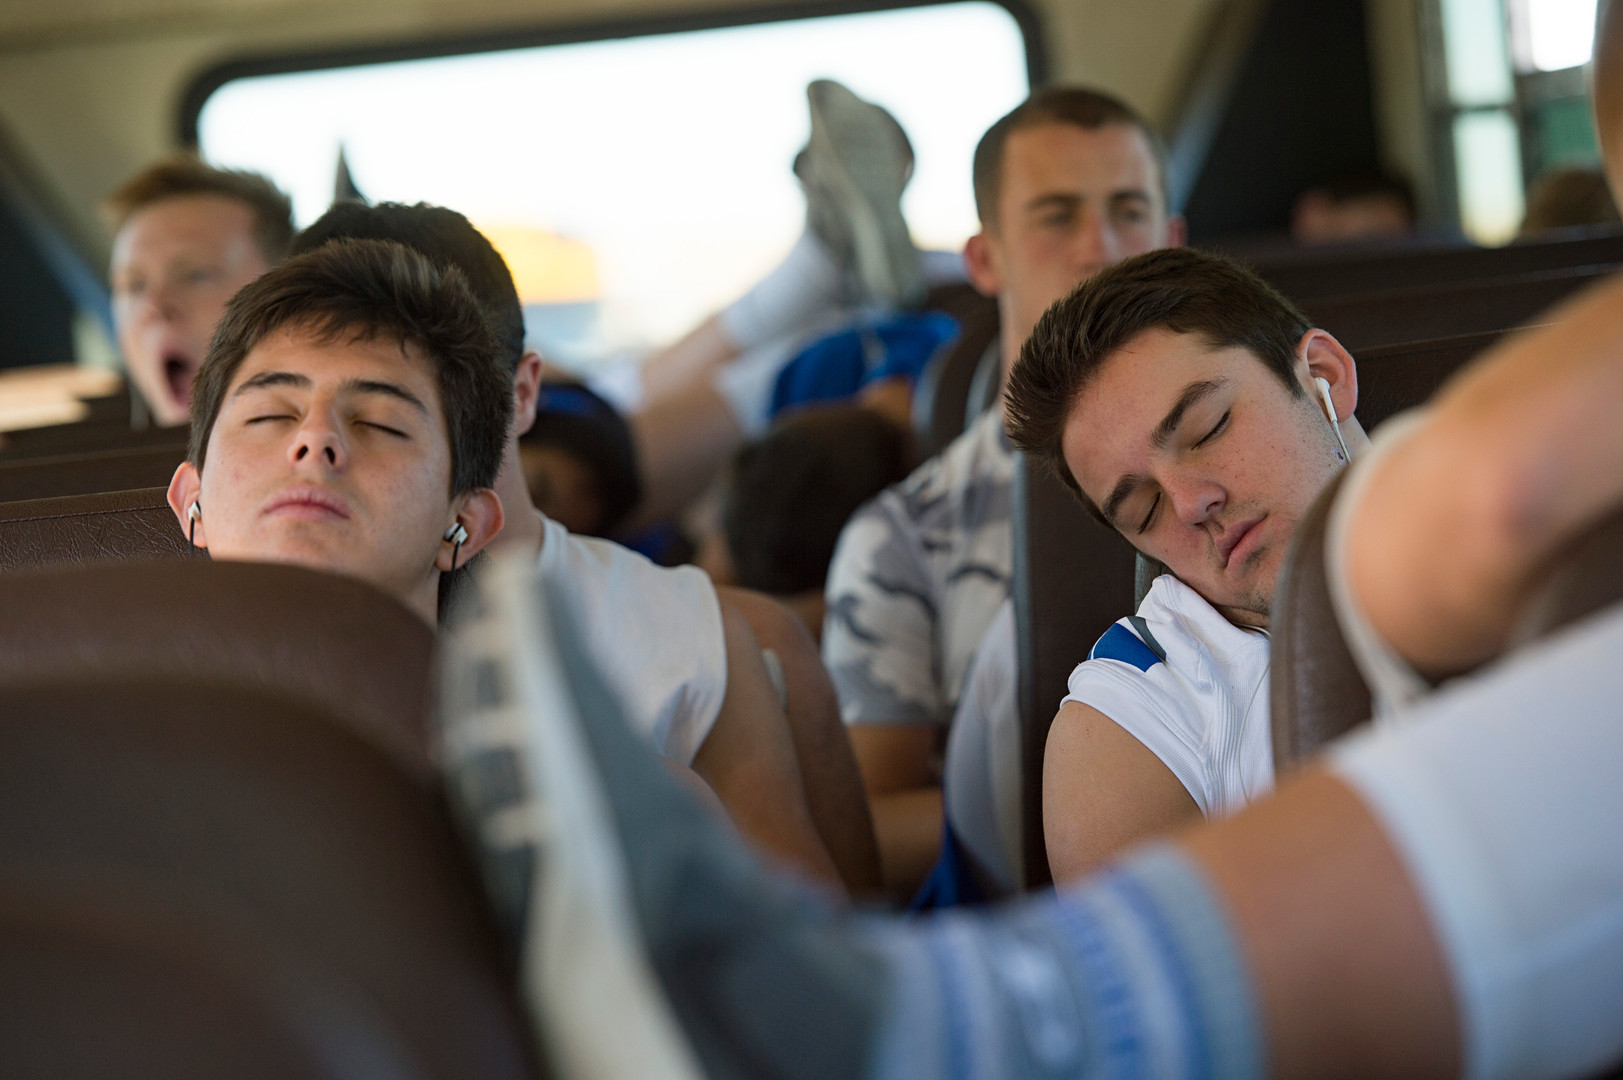 3:19 p.m. - Poudre High School football players Jordan Castenada and Carter Finch take a nap on the on the bus ride to a game against Legend High School in Parker Thursday, October 13, 2016.